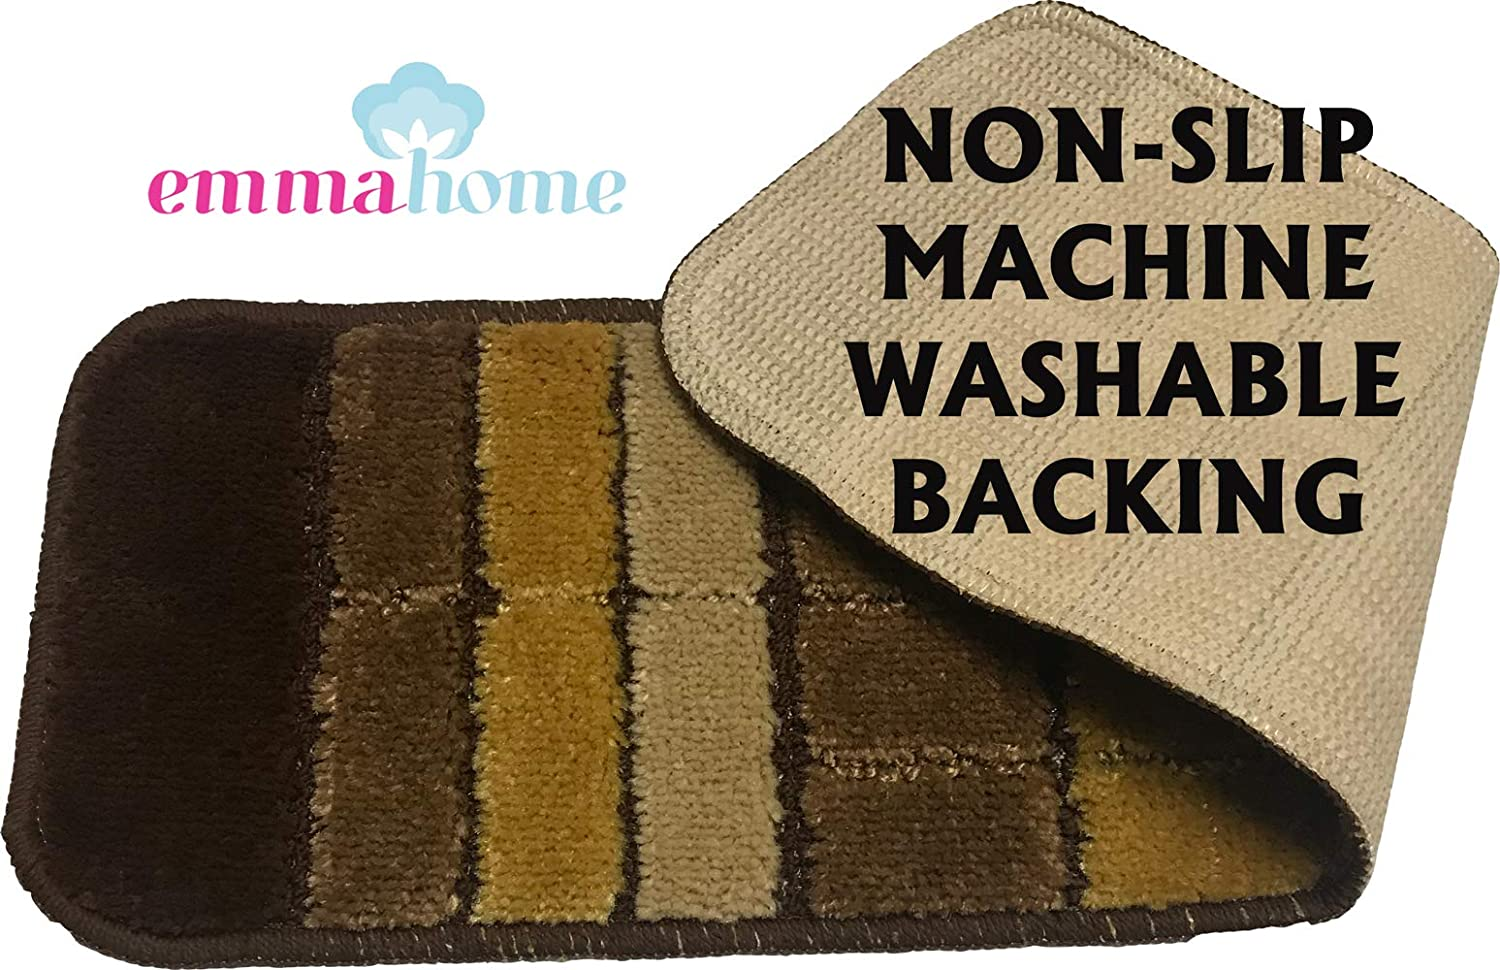 13pcs WATERFALL FUME Emmahome NEW Carpet Stair Treads NON-SLIP MACHINE WASHABLE Mats//Rugs UNIQUE IN LONDON